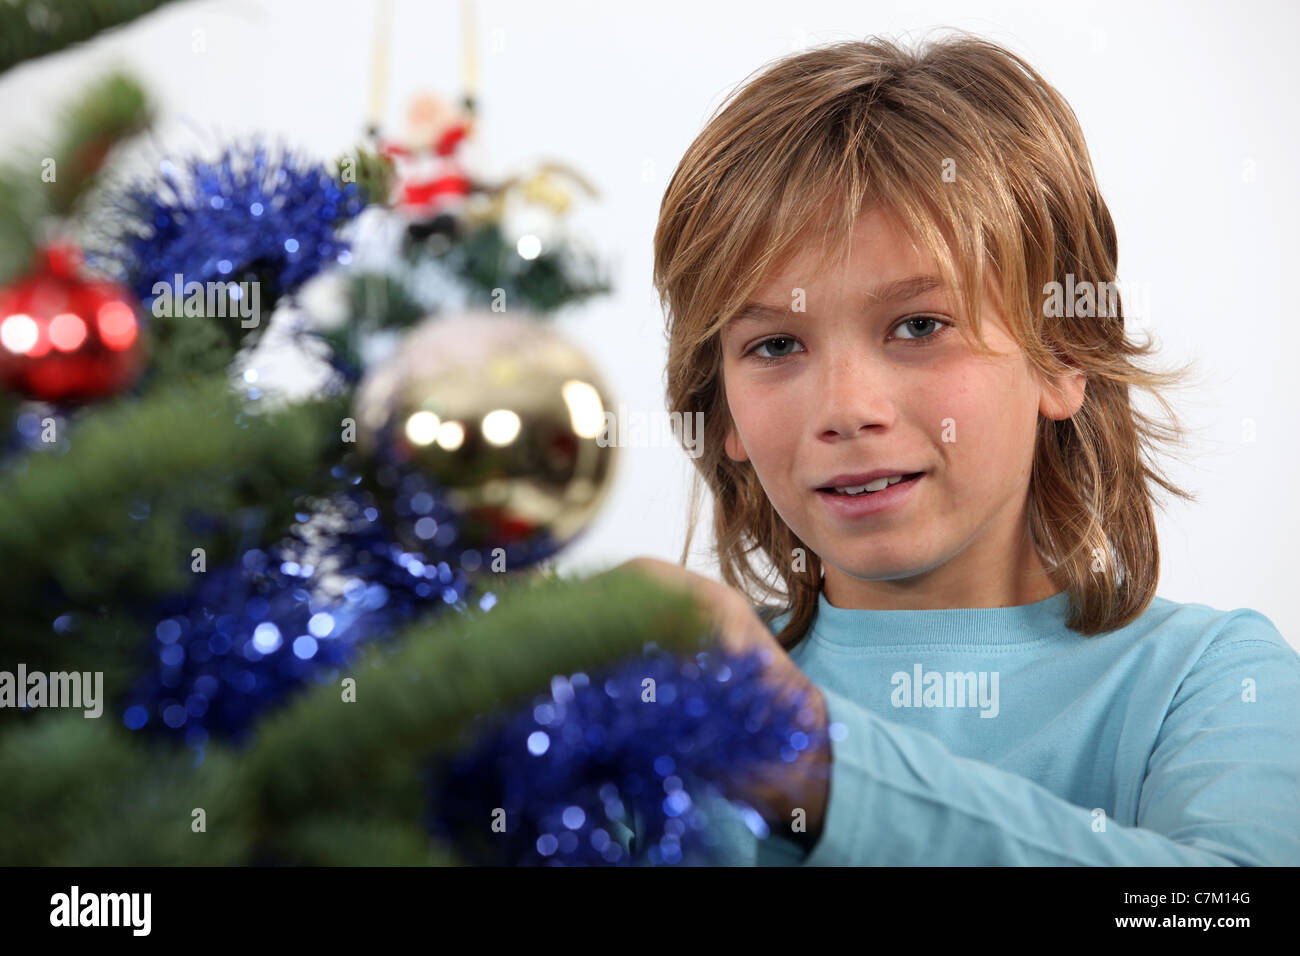 Prepubescent boy decorating a Christmas tree - Stock Image